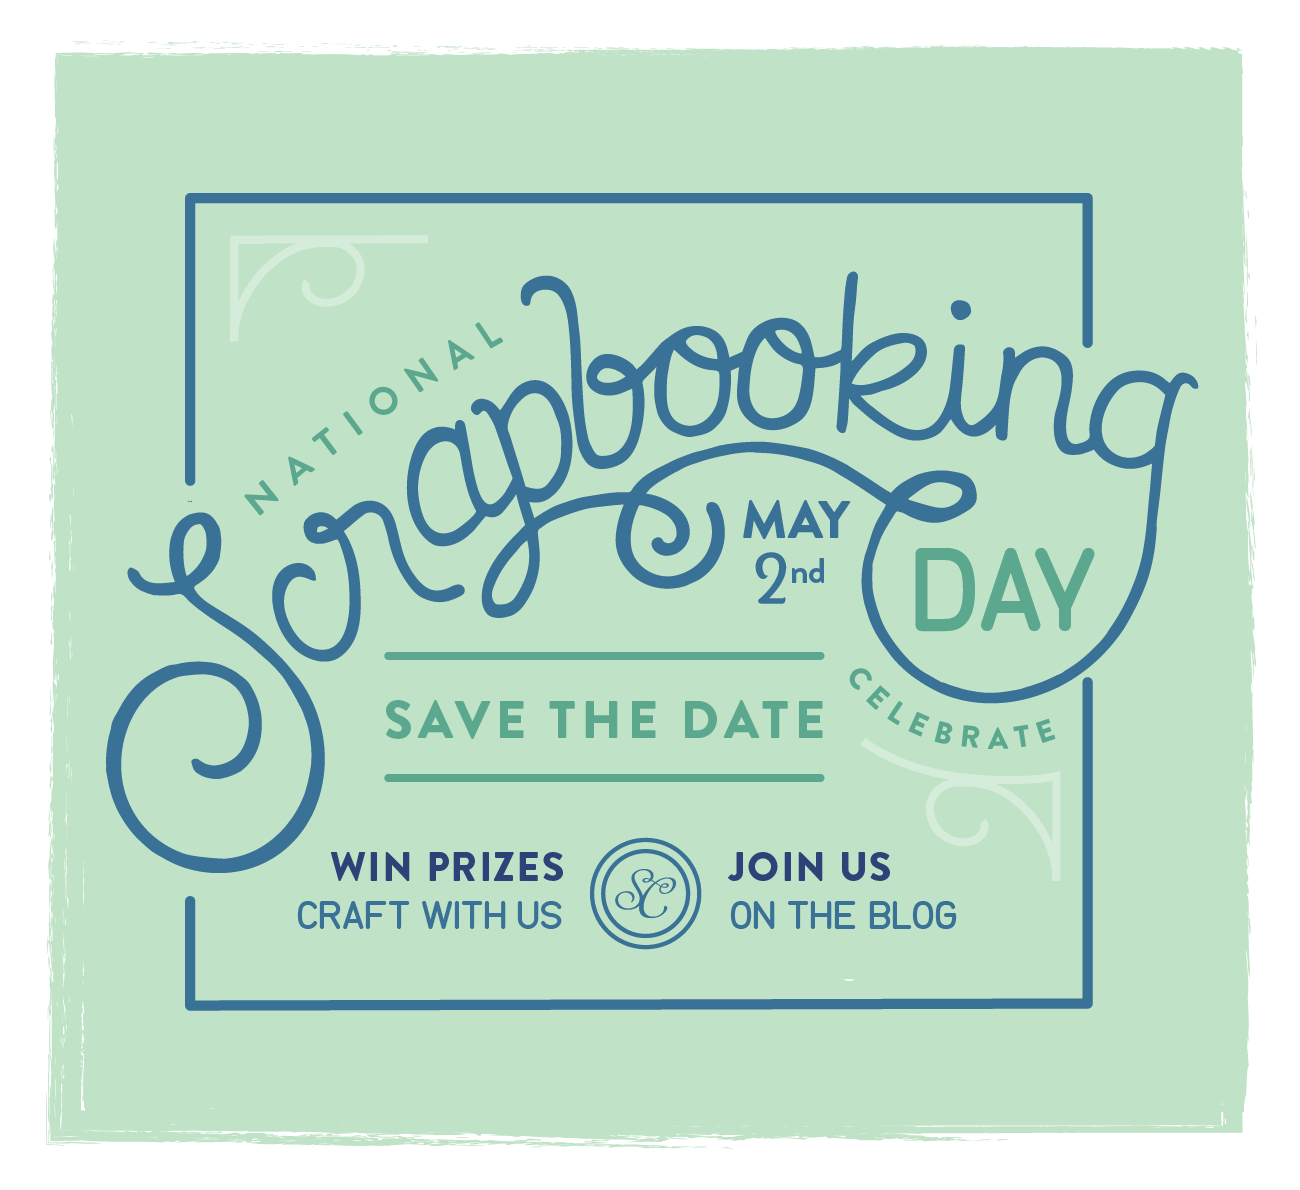 http://www.studiocalico.com/2015/04/save-the-date-for-national-scrapbook-day-2015?utm_source=newsletter&utm_medium=email&utm_content=National%20Scrapbooking%20Day%20-%20May%202nd%20-%20Save%20the%20Date%21%20-%20Win%20Prizes%20-%20Craft%20With%20Us%20-%20Join%20us%20on%20the%20blog&utm_campaign=Studio%20Calico%20NSD%20Save%20the%20Date